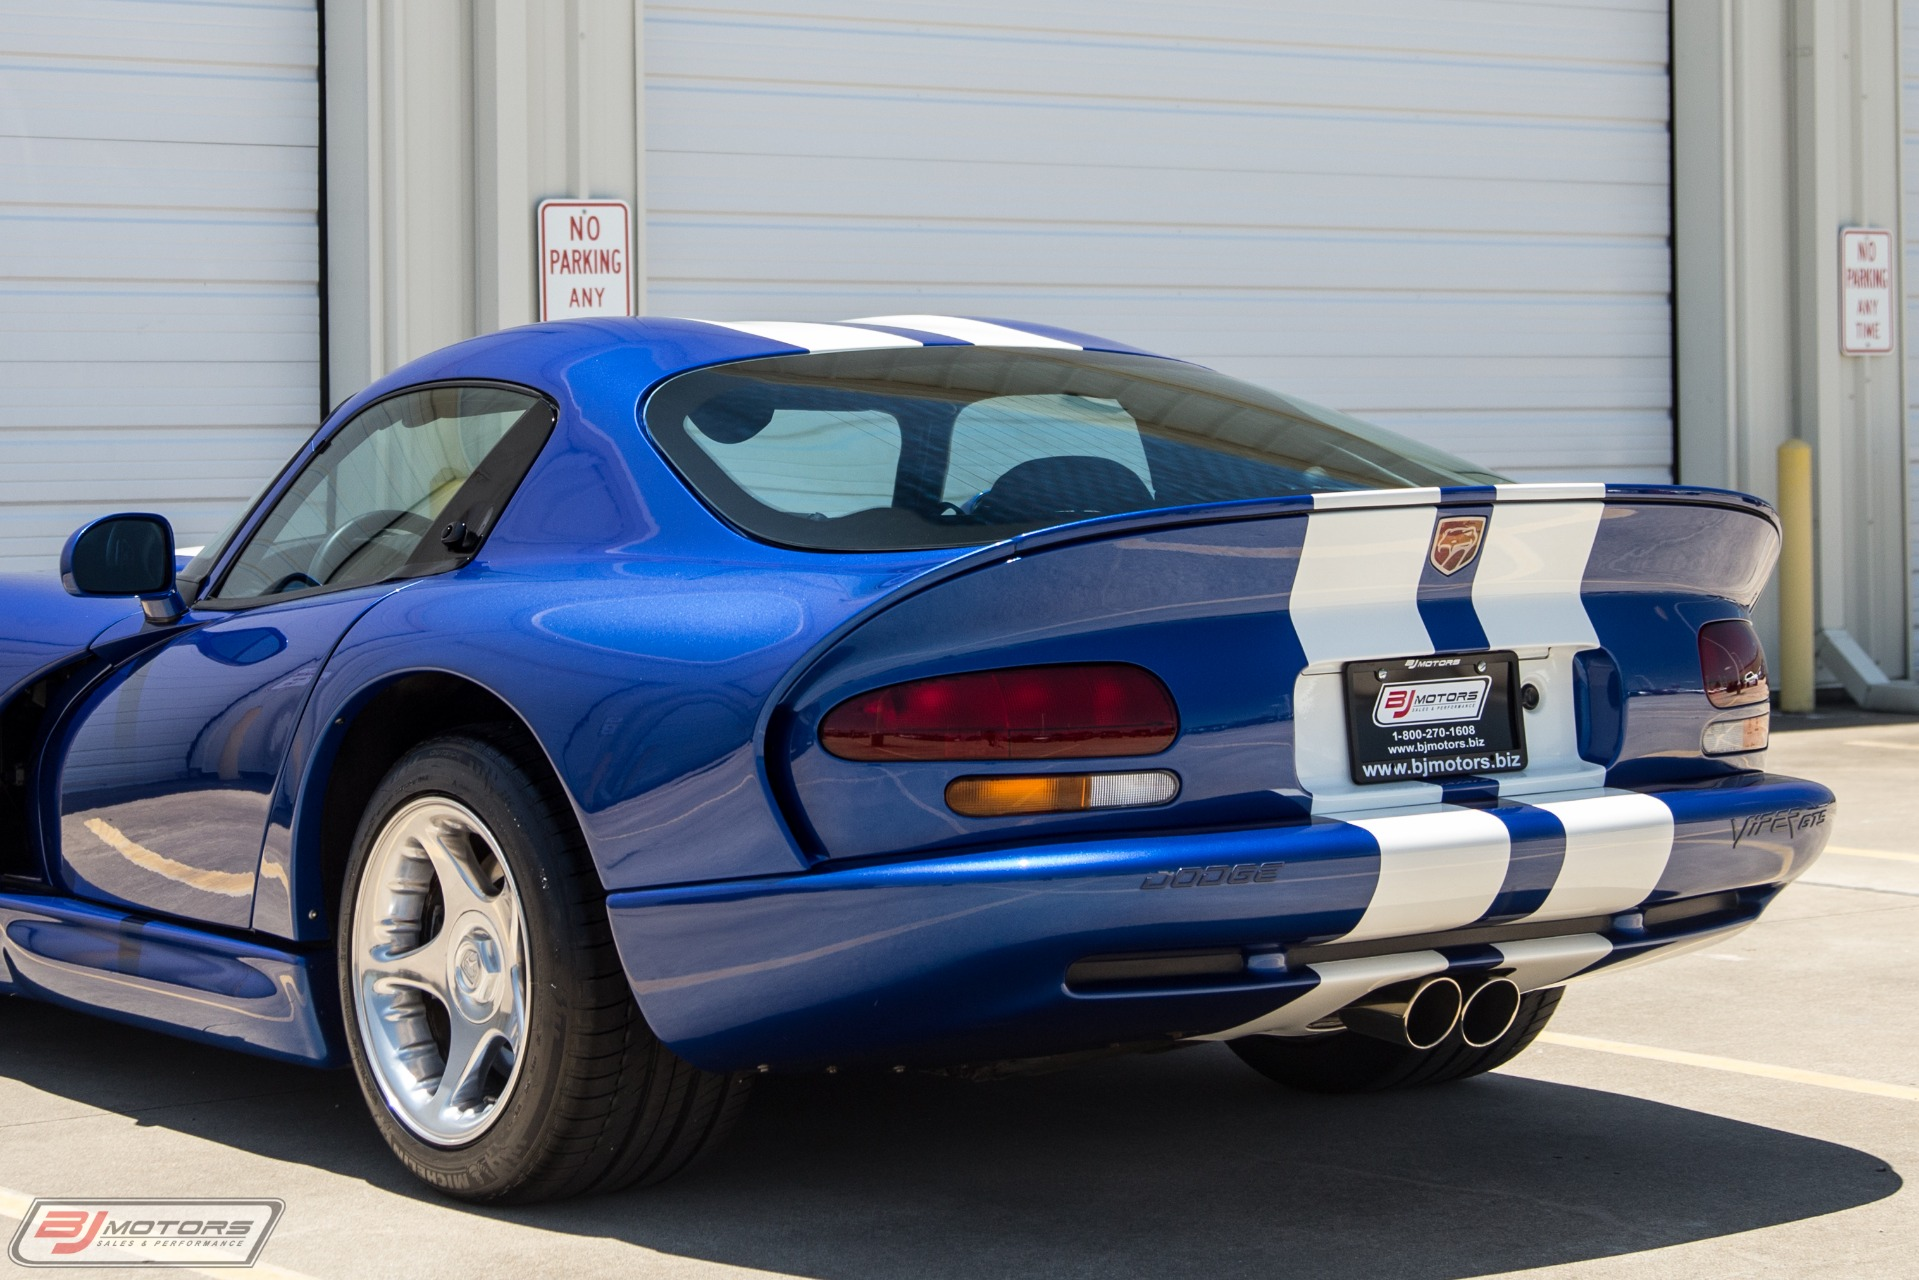 Used-1996-Dodge-Viper-GTS-Blue-and-White-Stripes